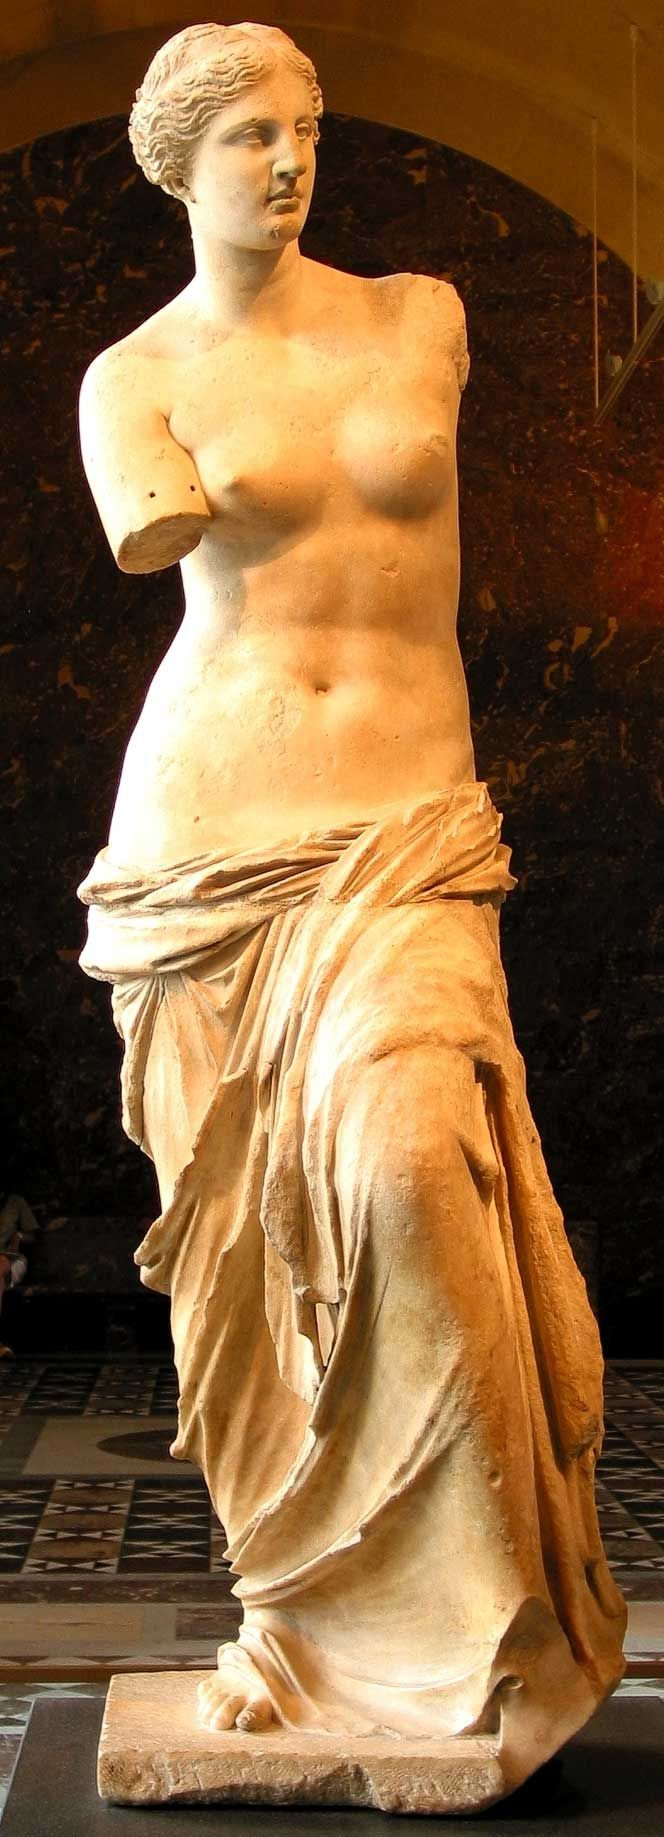 Venus de Milo-Aphrodite of Milos (Greek: Ἀφροδίτη τῆς Μήλου), Louvre Museum, Paris. Ancient Greek statue and one of the most famous works of ancient Greek sculpture. Created between 130 and 100 BC, it is believed to depict Aphrodite the Greek goddess of love and beauty. It is a marble sculpture, slightly larger than life size at 203 cm (6 ft 8 in) high. Its arms and original plinth have been lost. From an inscription that was on its plinth, it is thought to be the work of Alexandros of…